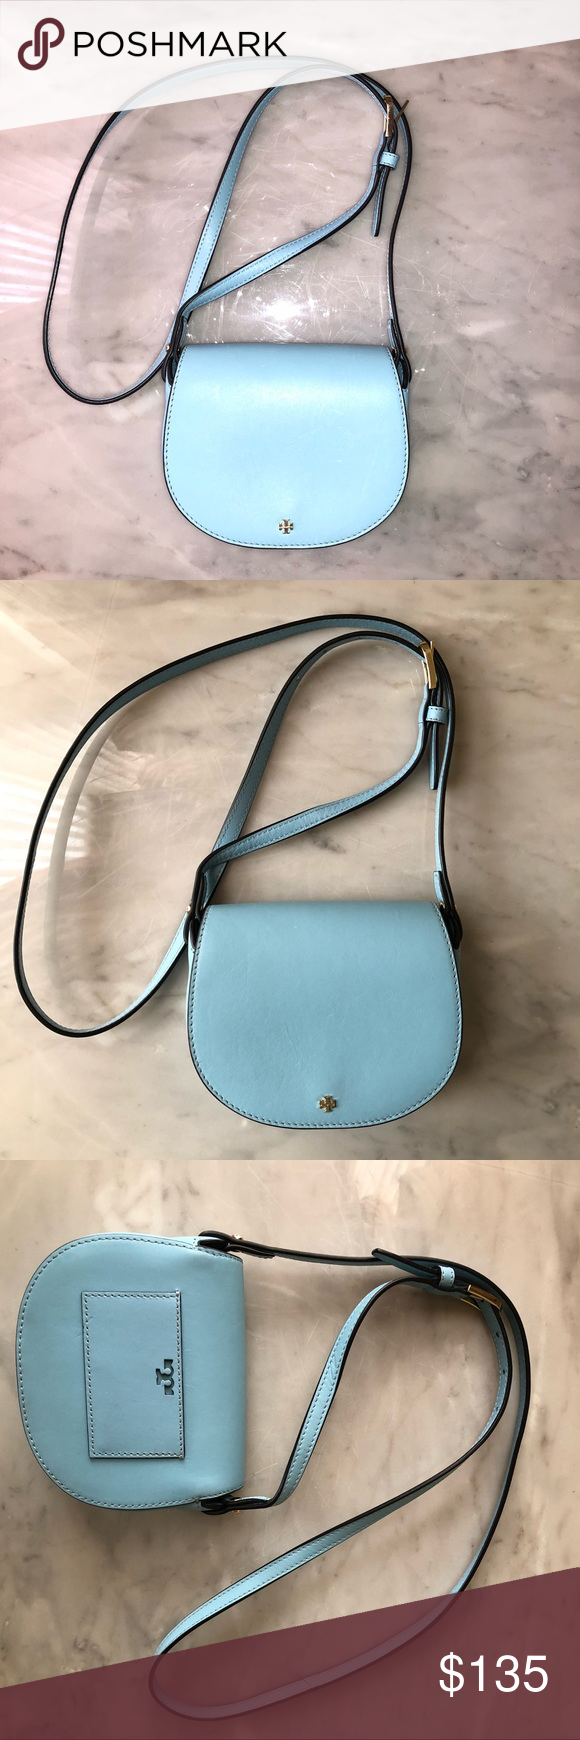 72b7f0d9e92b TORY BURCH BABY BLUE CROSSBODY • Gorgeous crossbody in excellent pre loved  condition. No stains. Price is firm. Debating on still keeping it myself  Tory ...